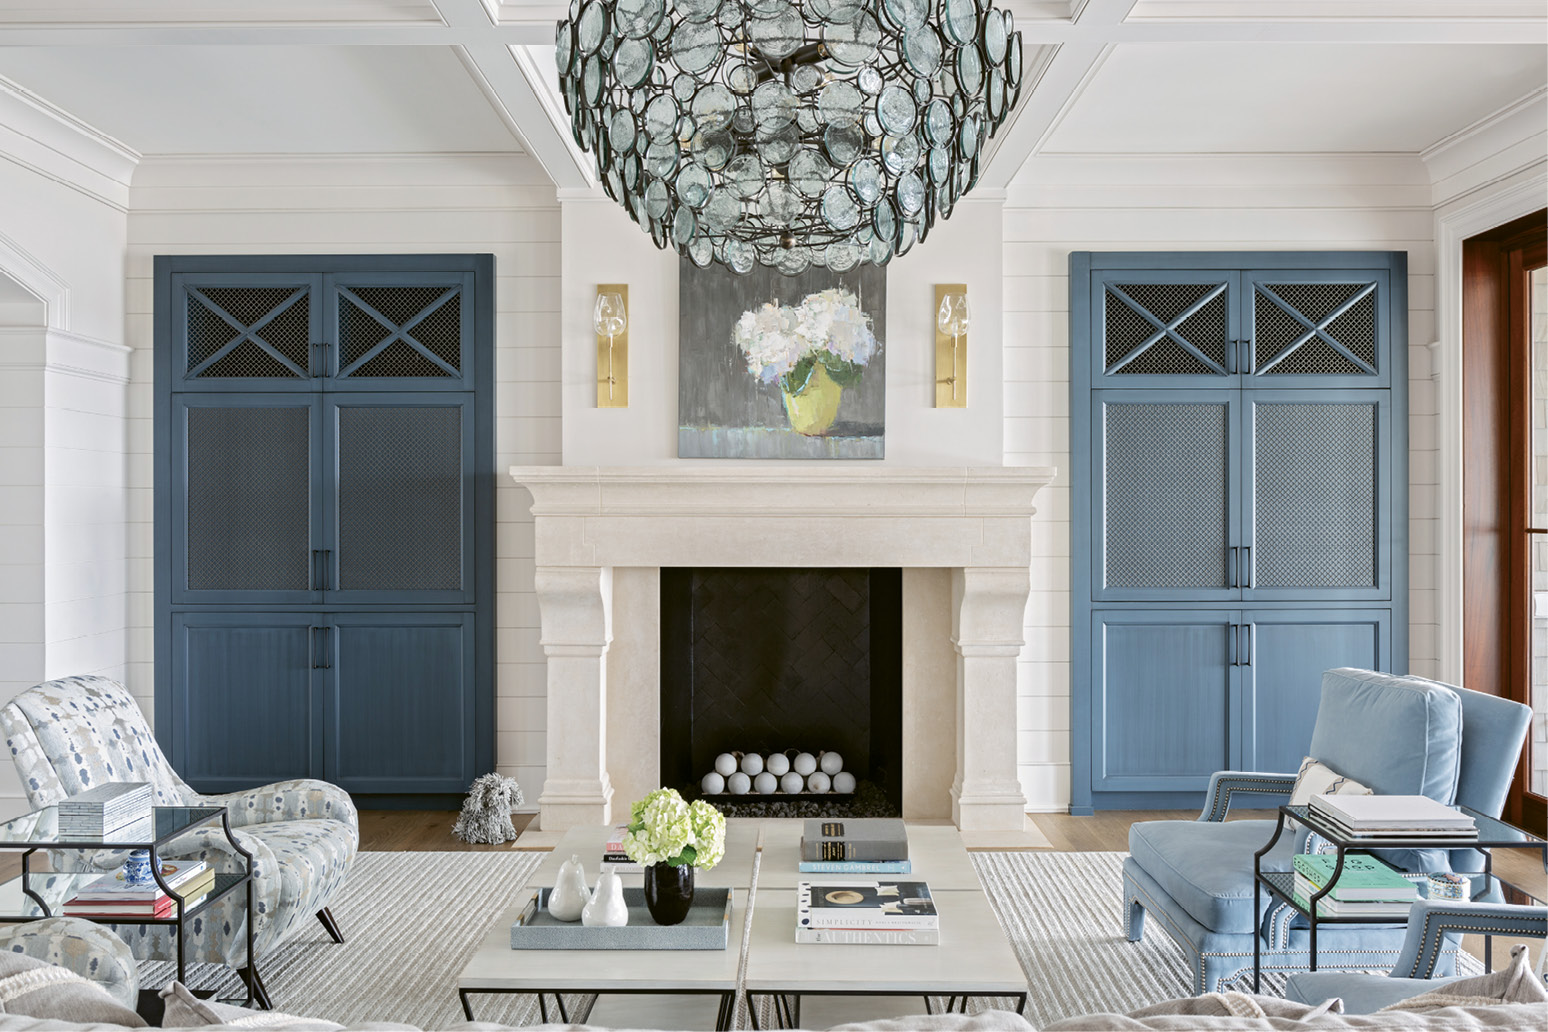 Hundreds of glass circles in the Currey and Company chandelier play with the ever-shifting light outside. A large oil painting by Barbara Flowers highlights the living room. The striking work of white hydrangeas captivated Suzie the moment she saw it in the window of Principle Gallery in Charleston.